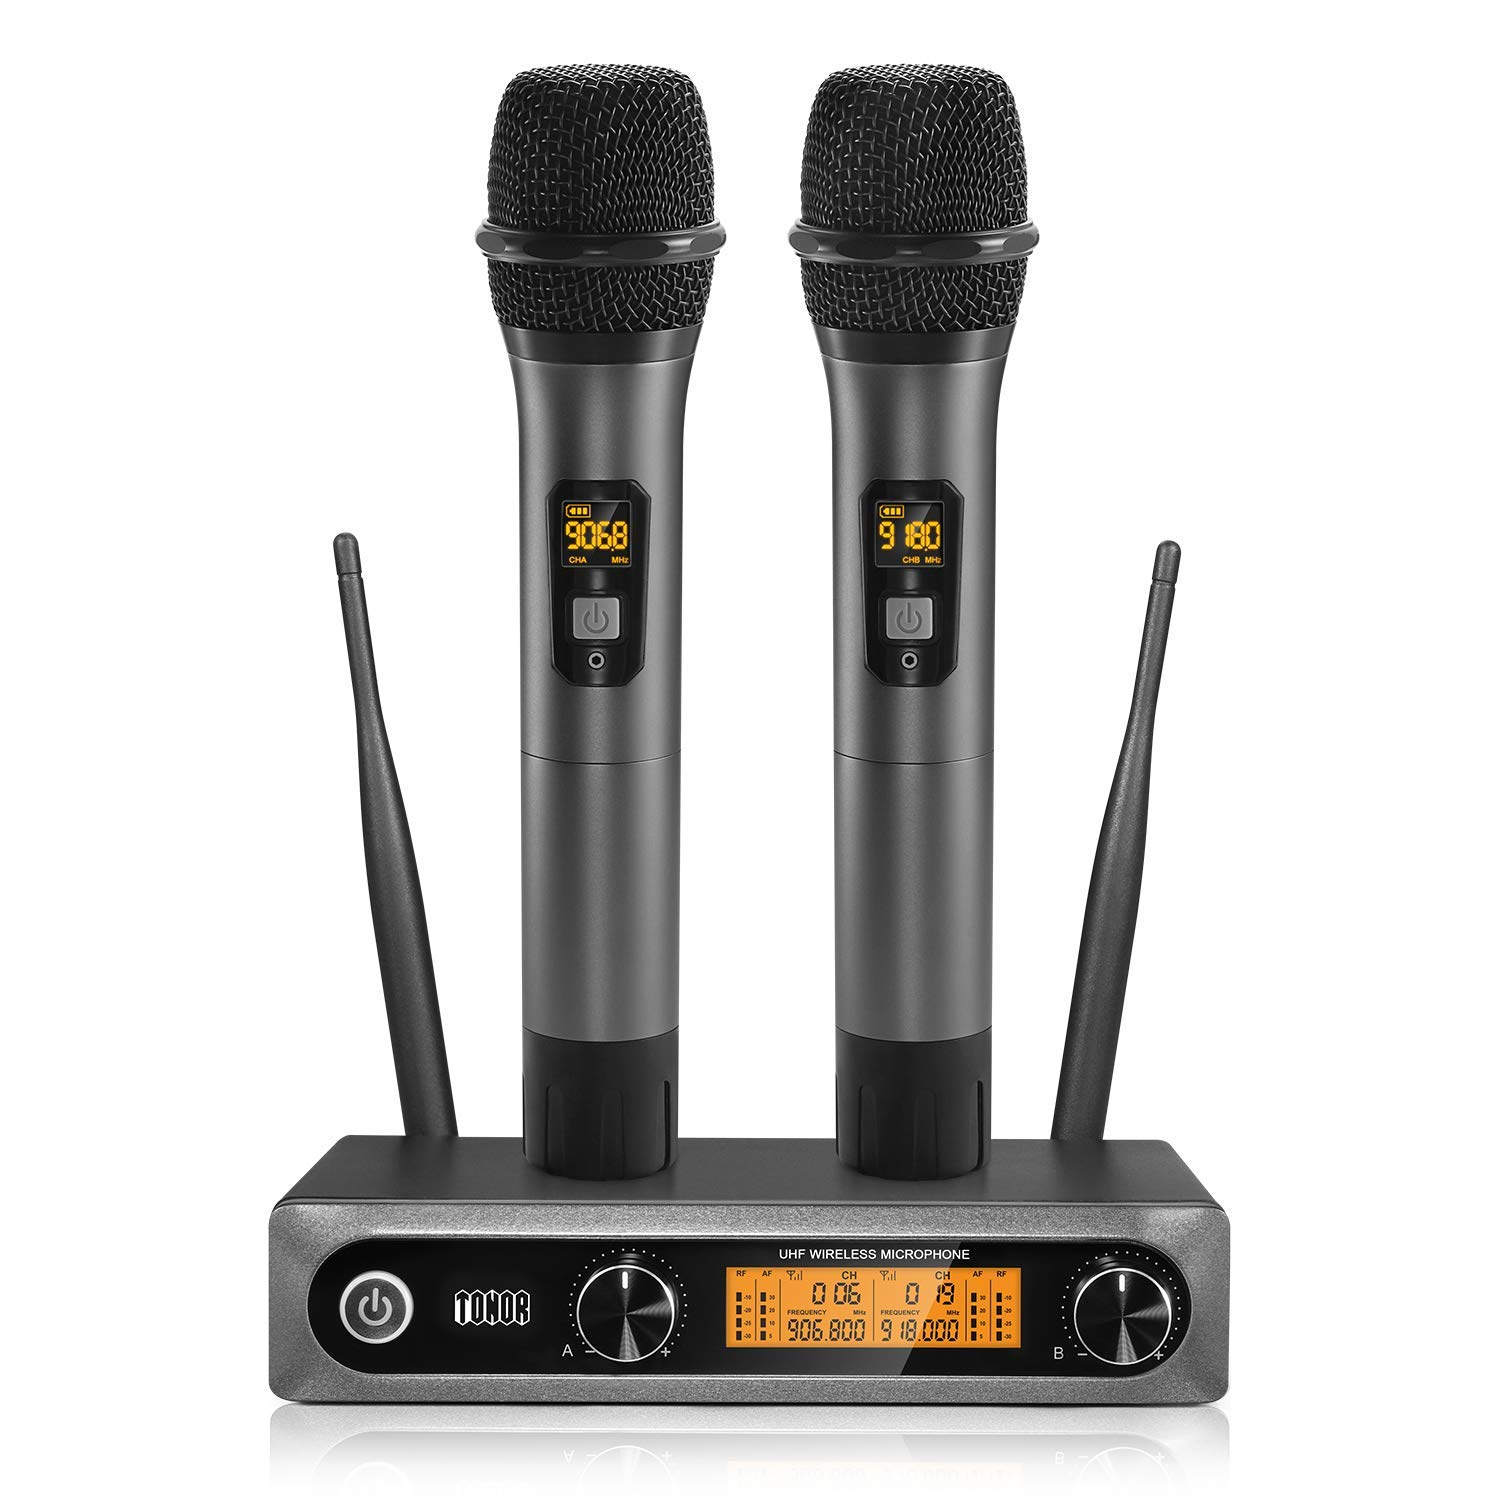 Top 8 Best Wireless Microphone For Tour Guide In Car - Buyer's Guide 3